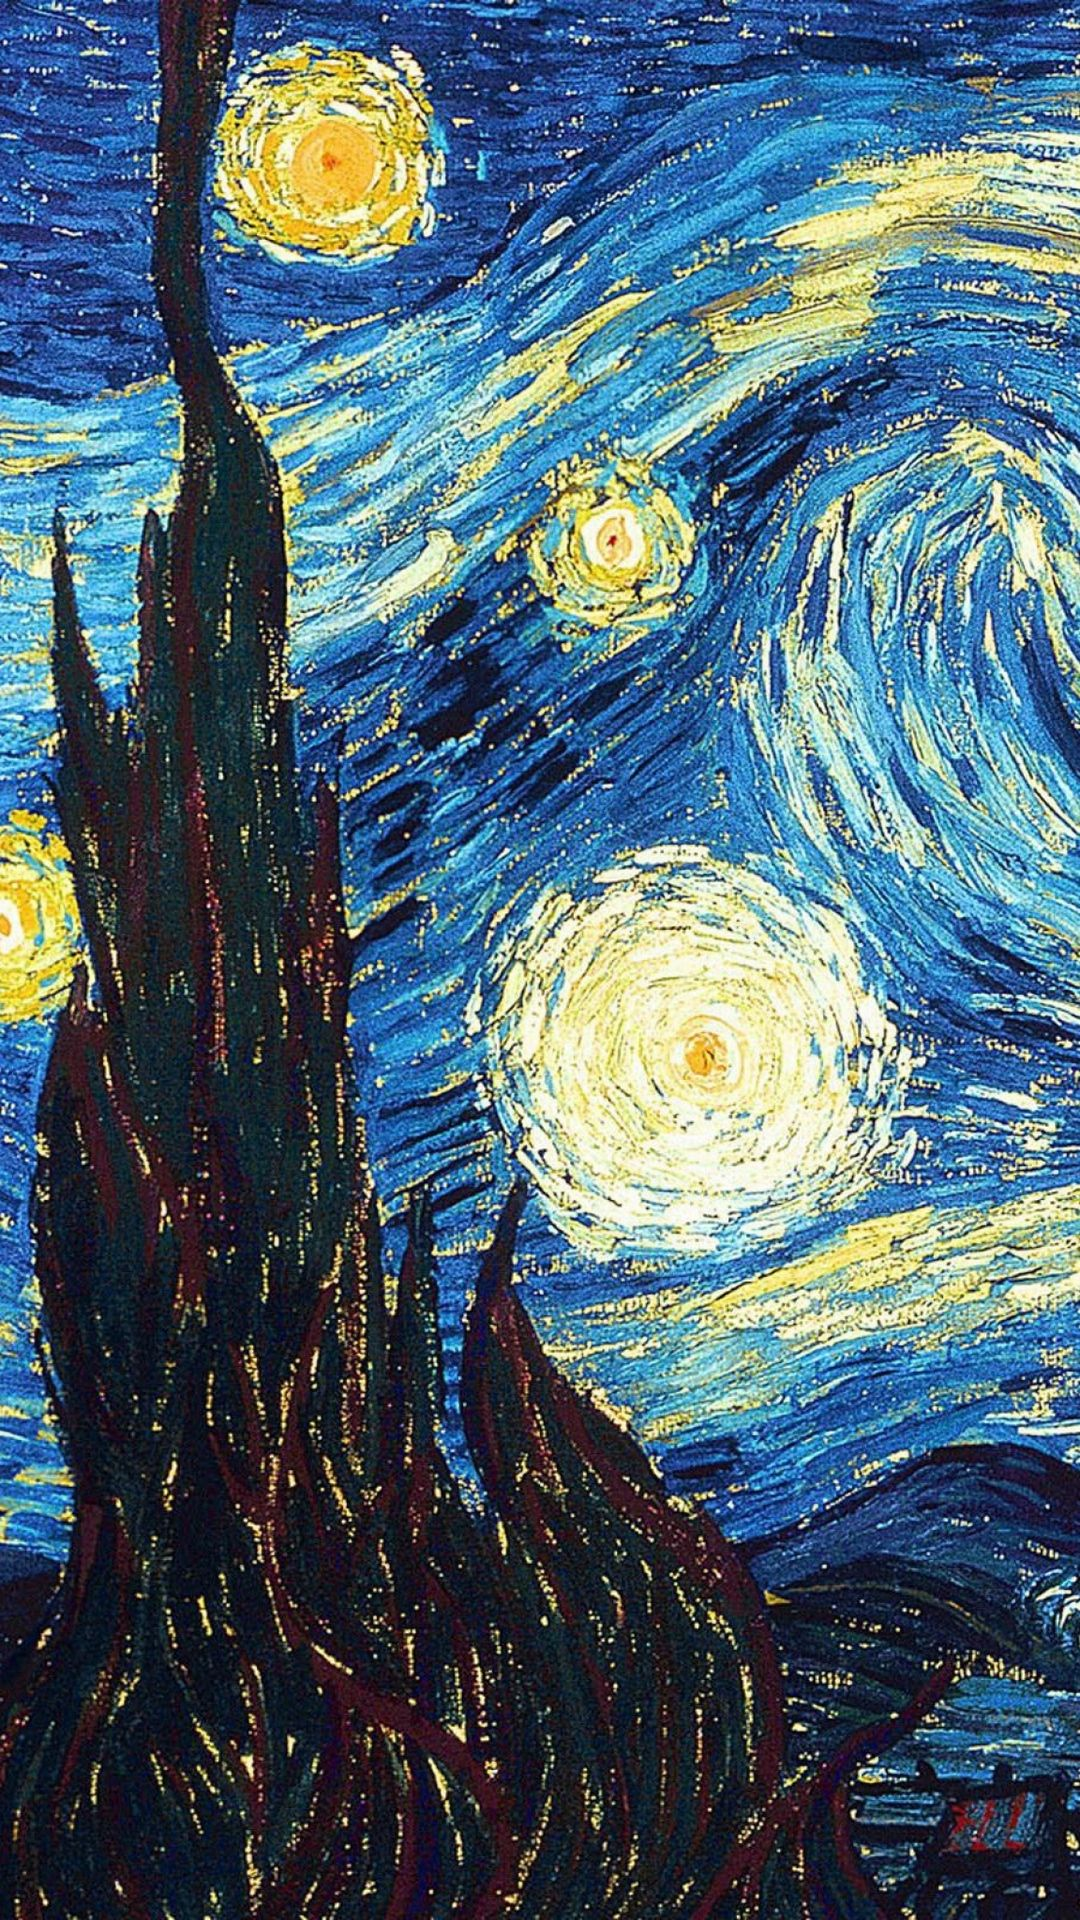 Oil The Starry Night Vincent Van Gogh Infinity Wallpaper Van Gogh Art Van Gogh Wallpaper Art Wallpaper